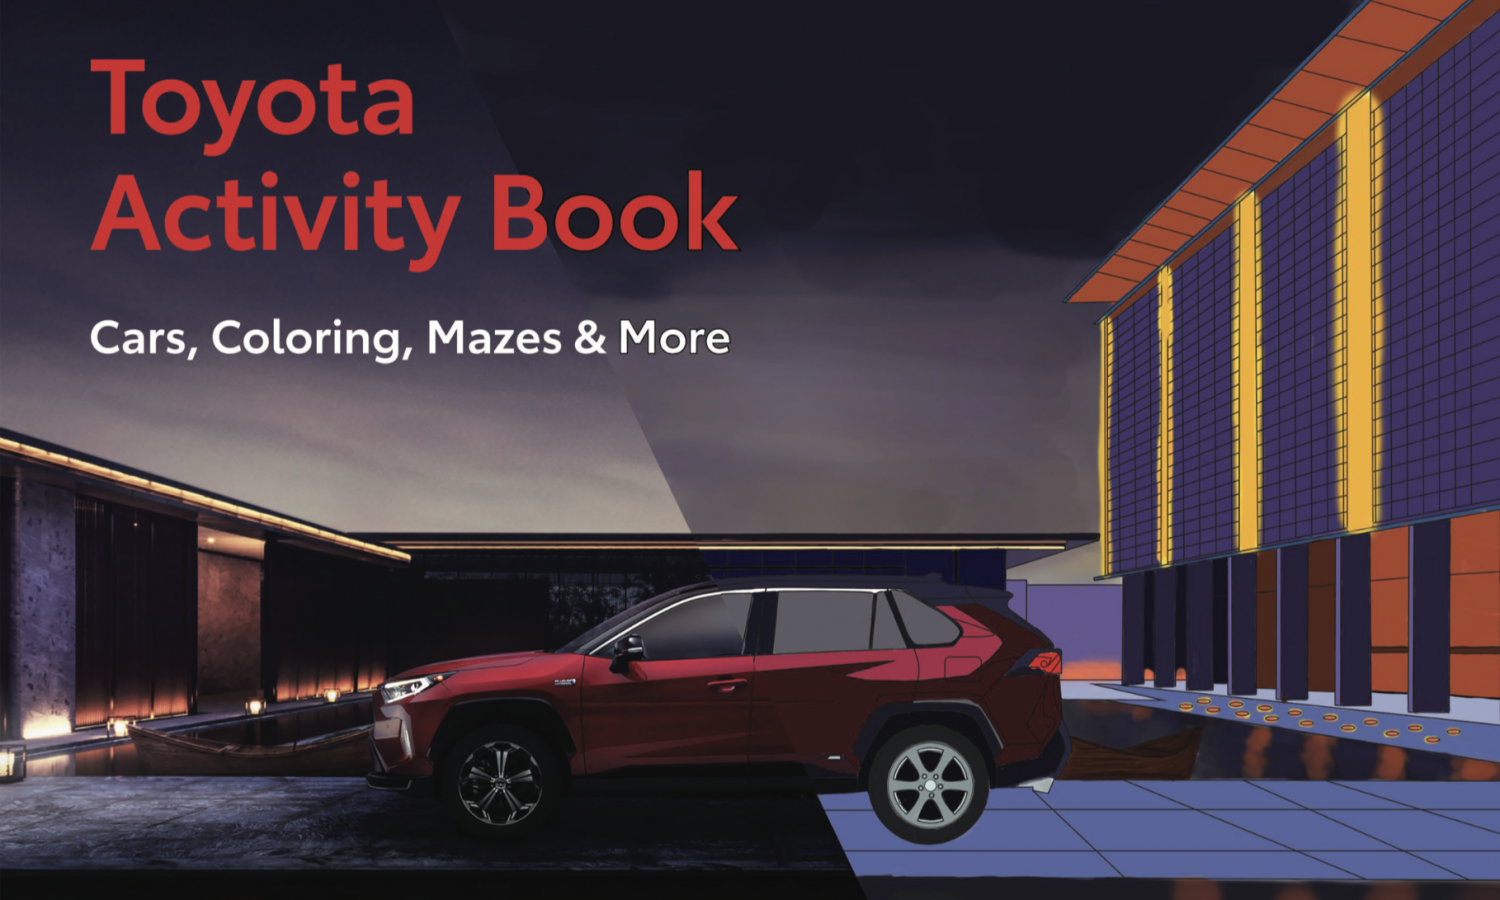 Toyota Offers Fun At-Home Activity Packs for All Ages